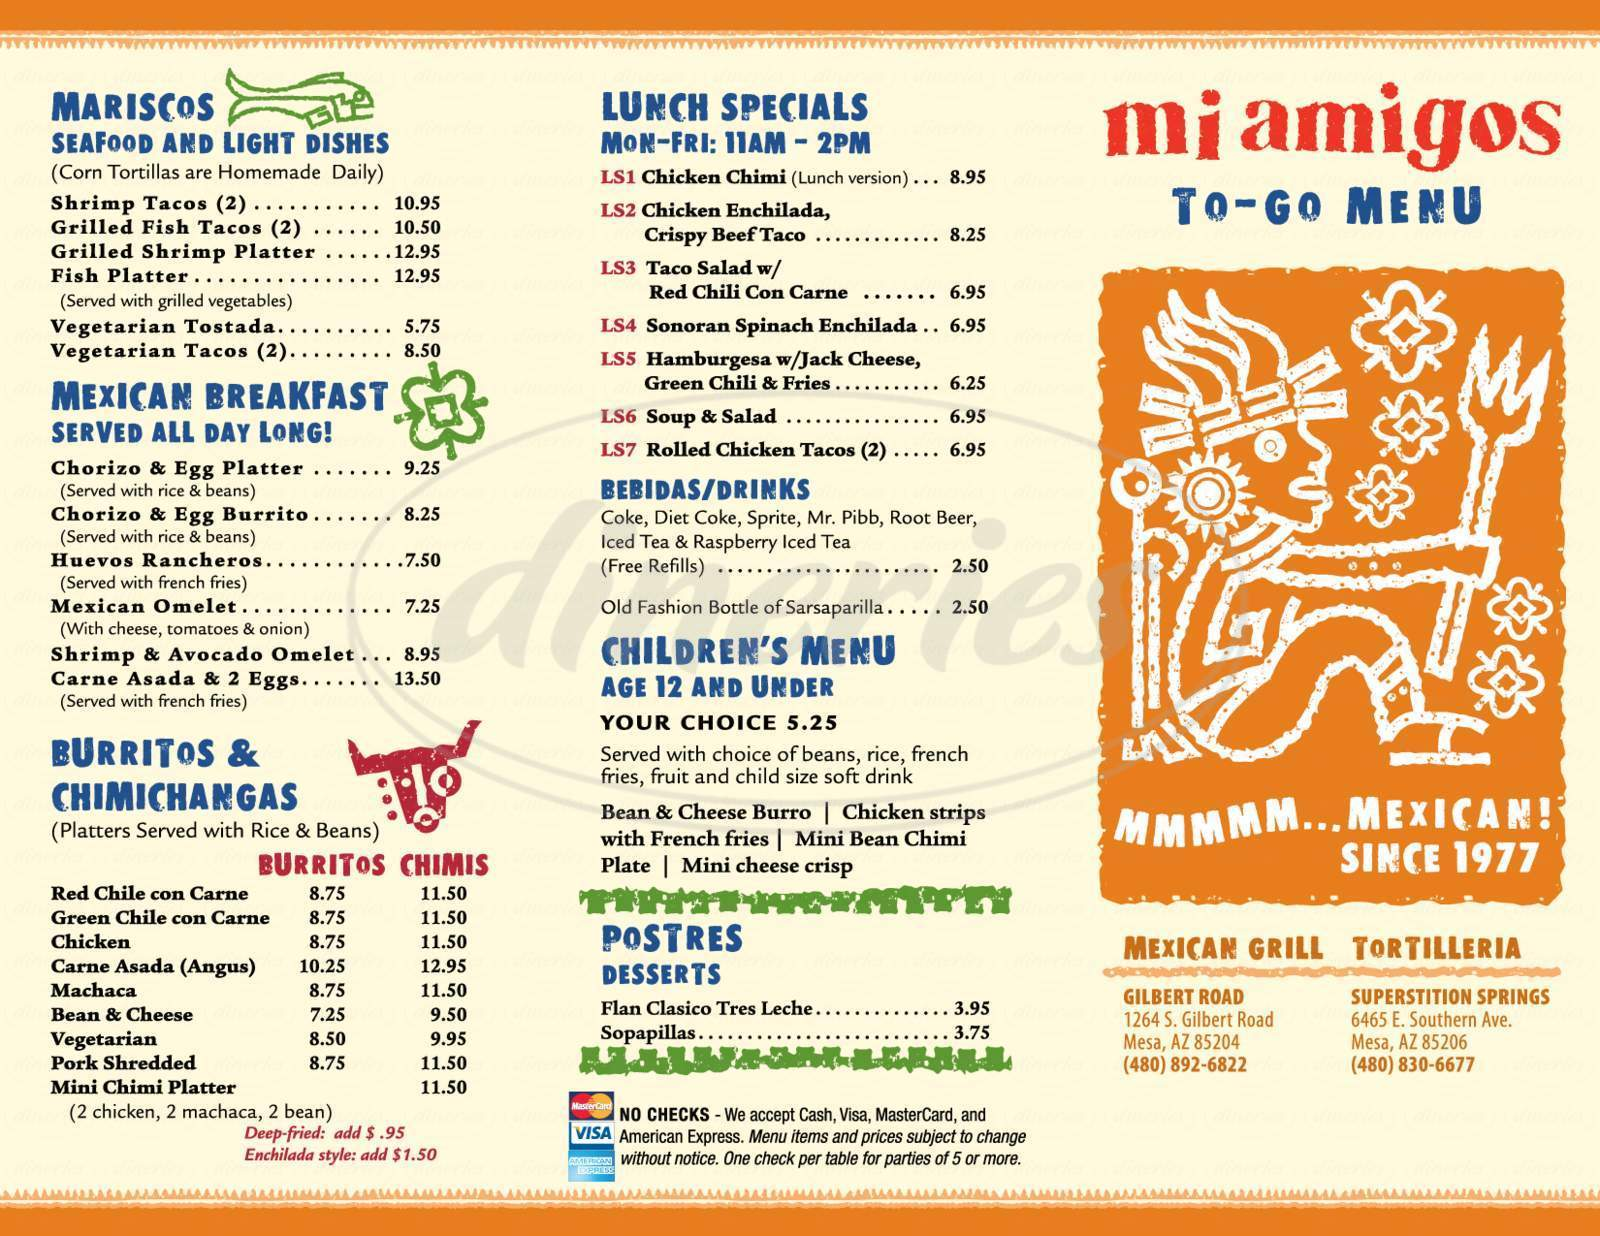 menu for Mi Amigo's Mexican Grill